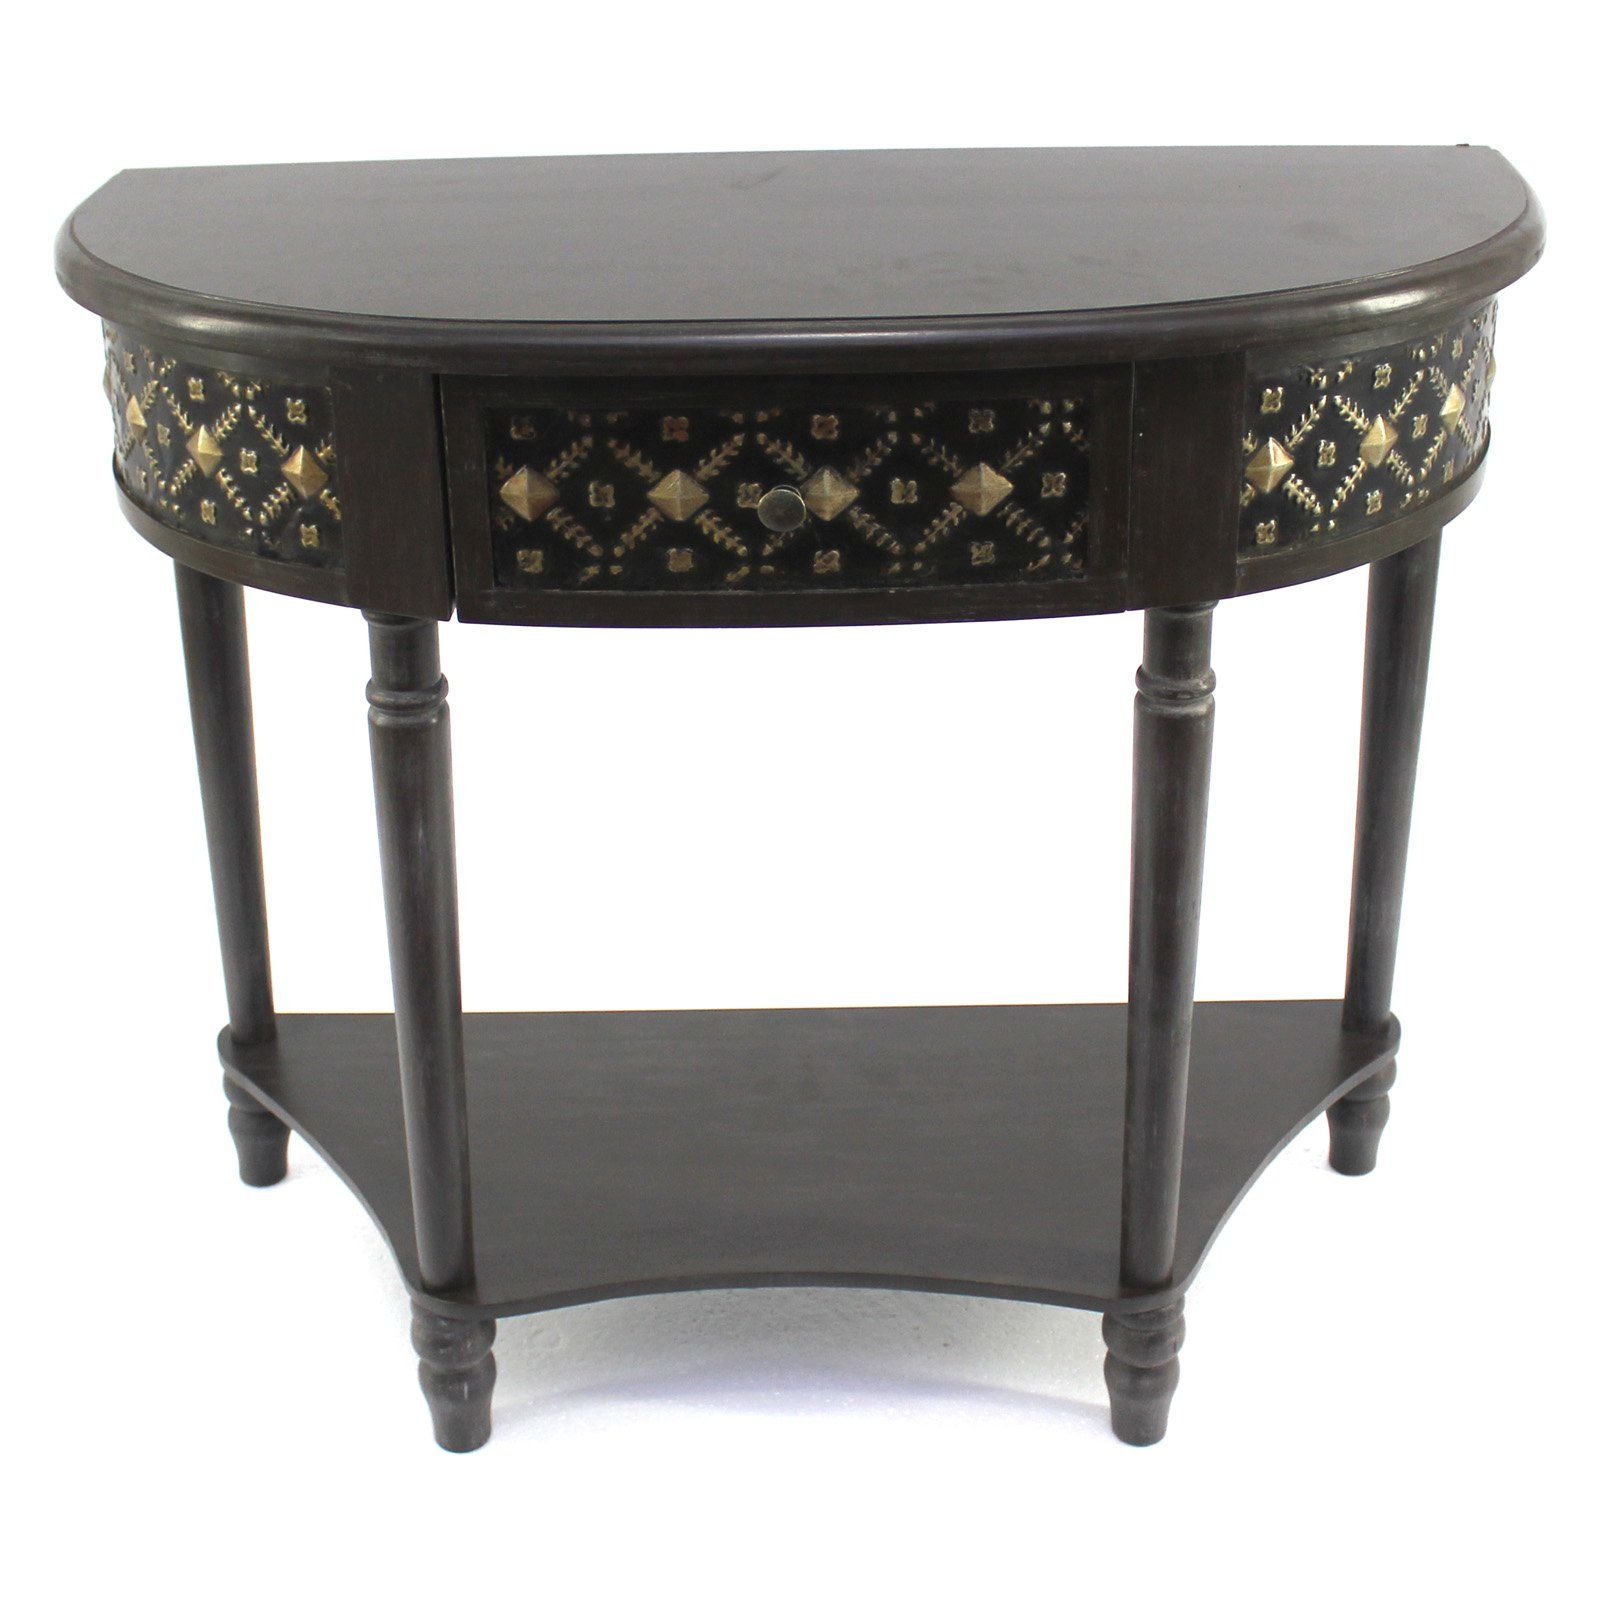 Incredible Teton Home Crescent Console Table With Shelf Products In Machost Co Dining Chair Design Ideas Machostcouk